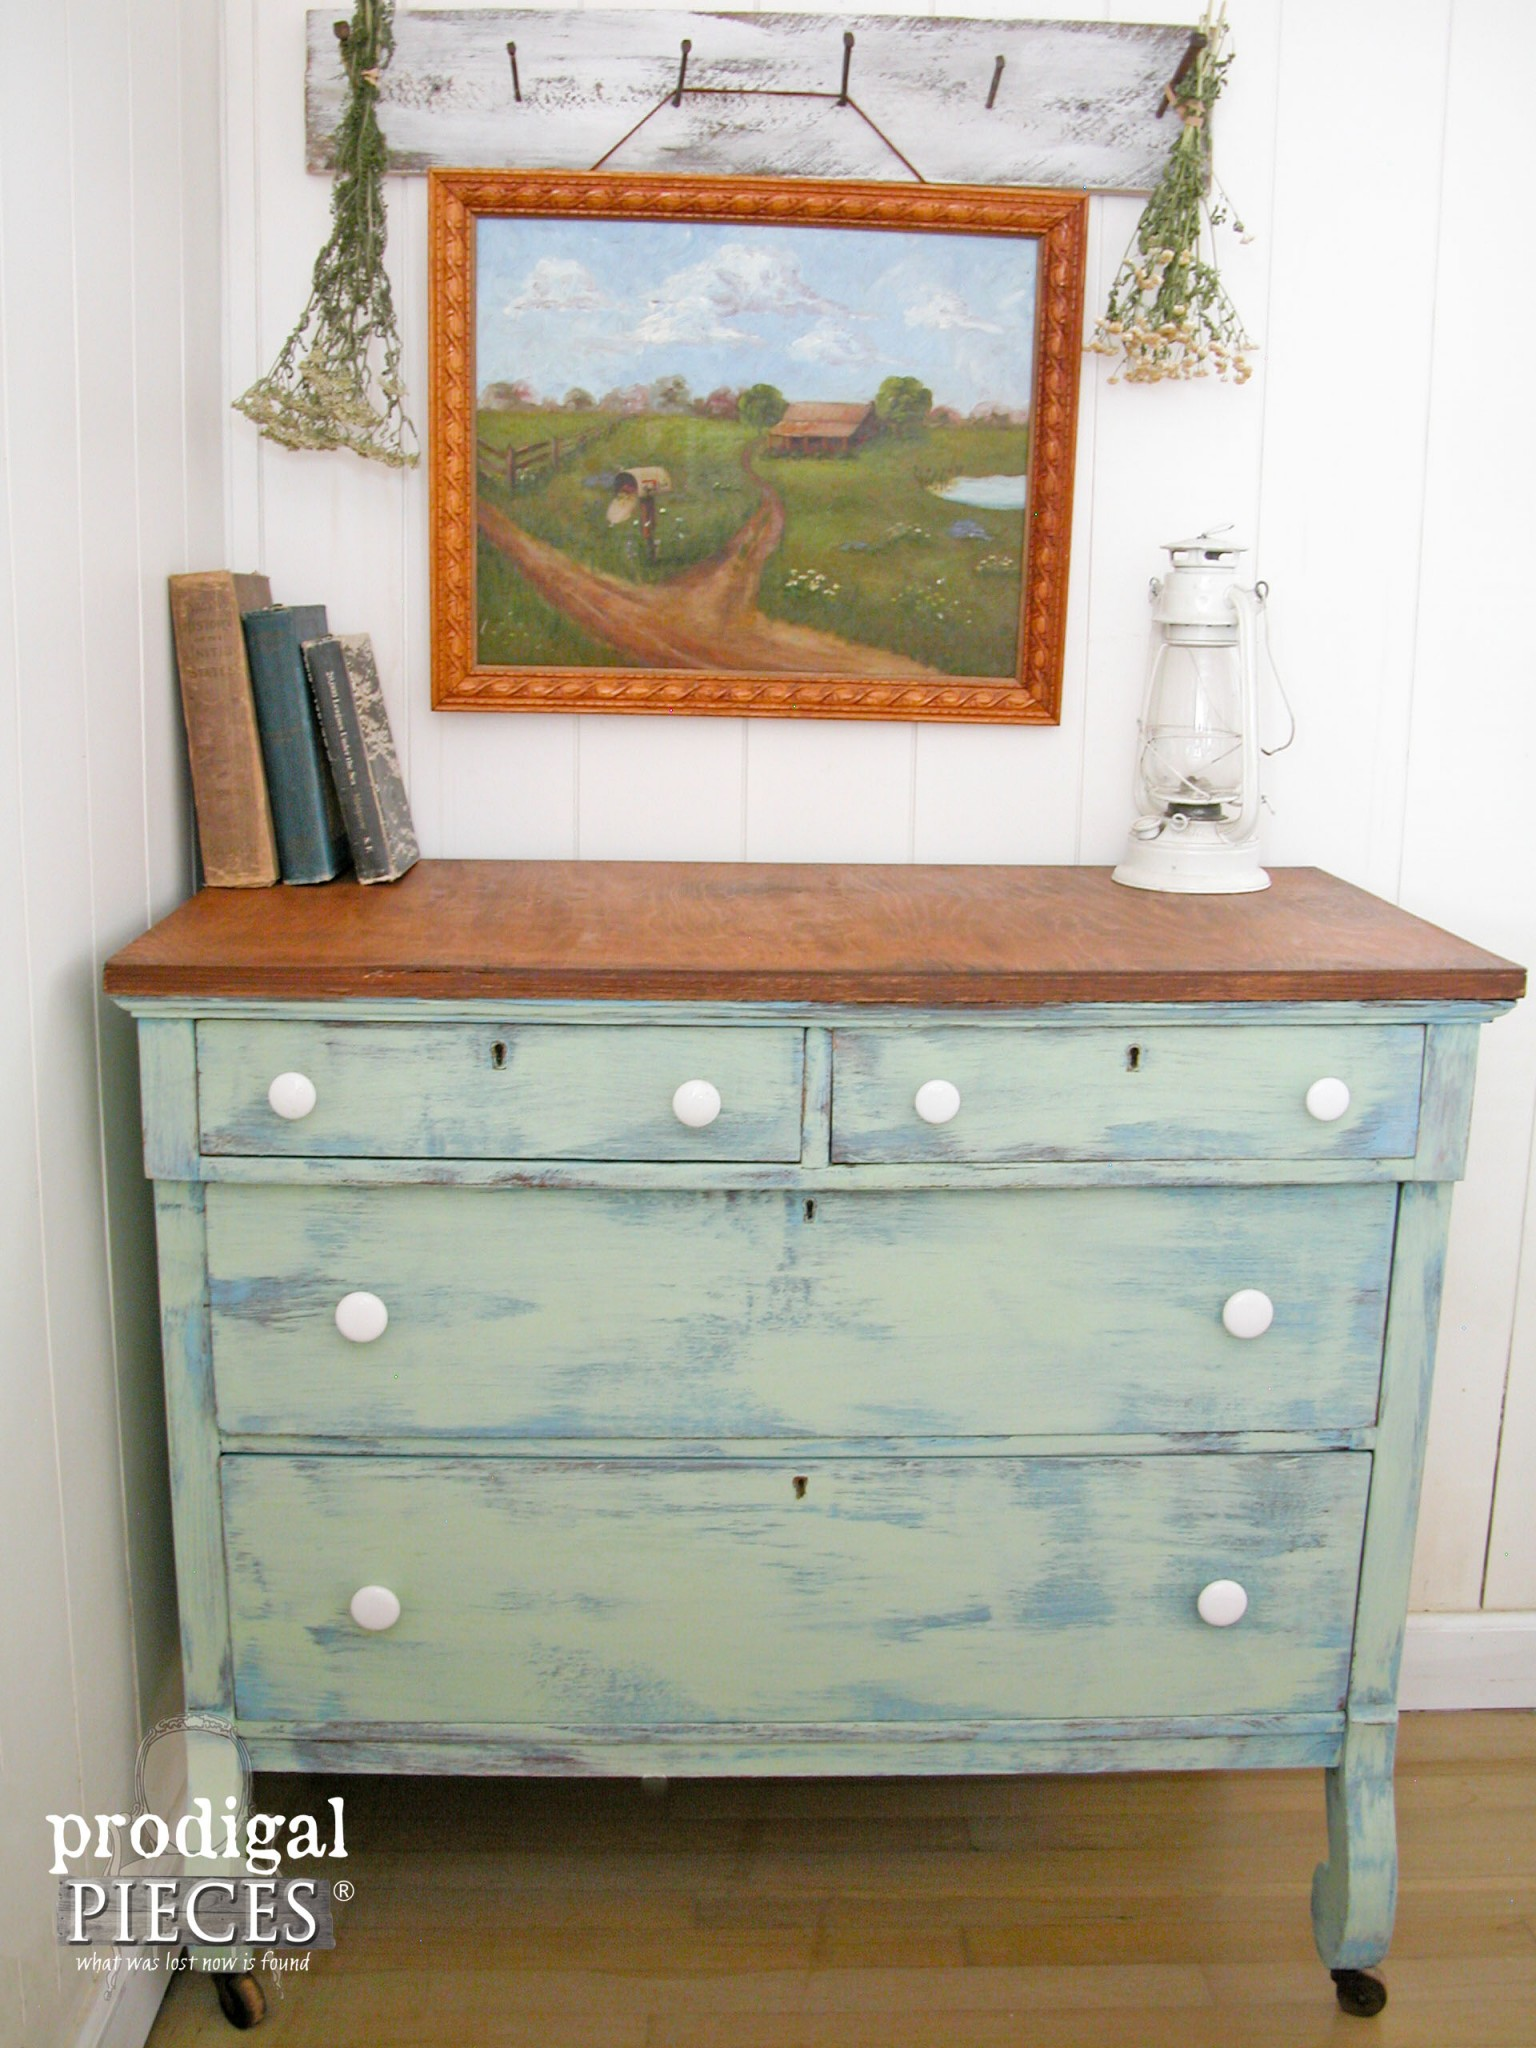 Farmhouse Dresser with Damaged Veneer Removal Tutorial by Prodigal Pieces | www.prodigalpieces.com